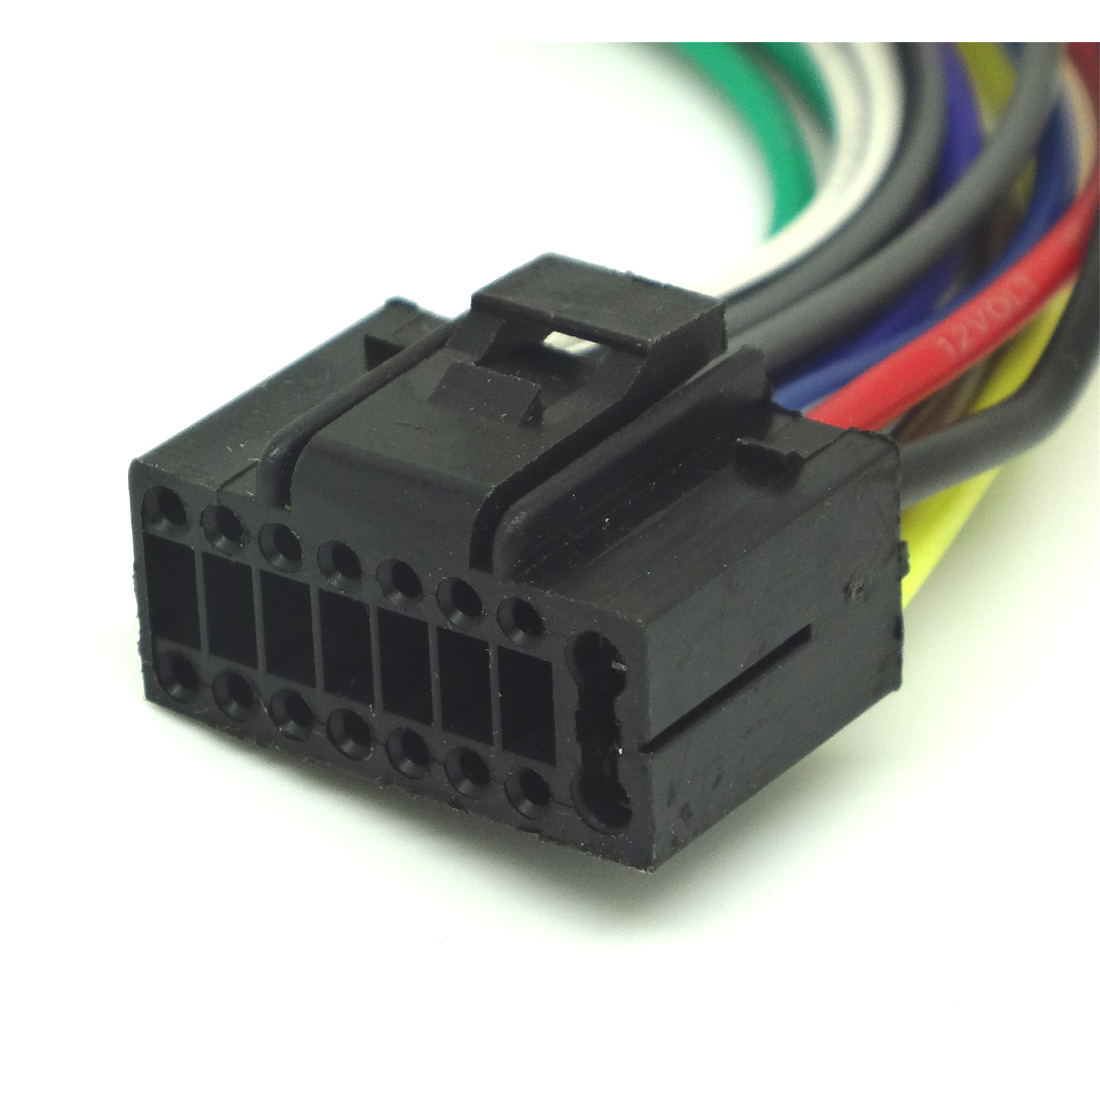 Kenwood 9703s Wiring Diagram Wiring Diagrams likewise Kenwood Ddx418 Wire Colors likewise Multiple Car  lifier Wiring Diagram moreover Showthread likewise 390684740777. on kenwood mobile audio wiring harness diagram